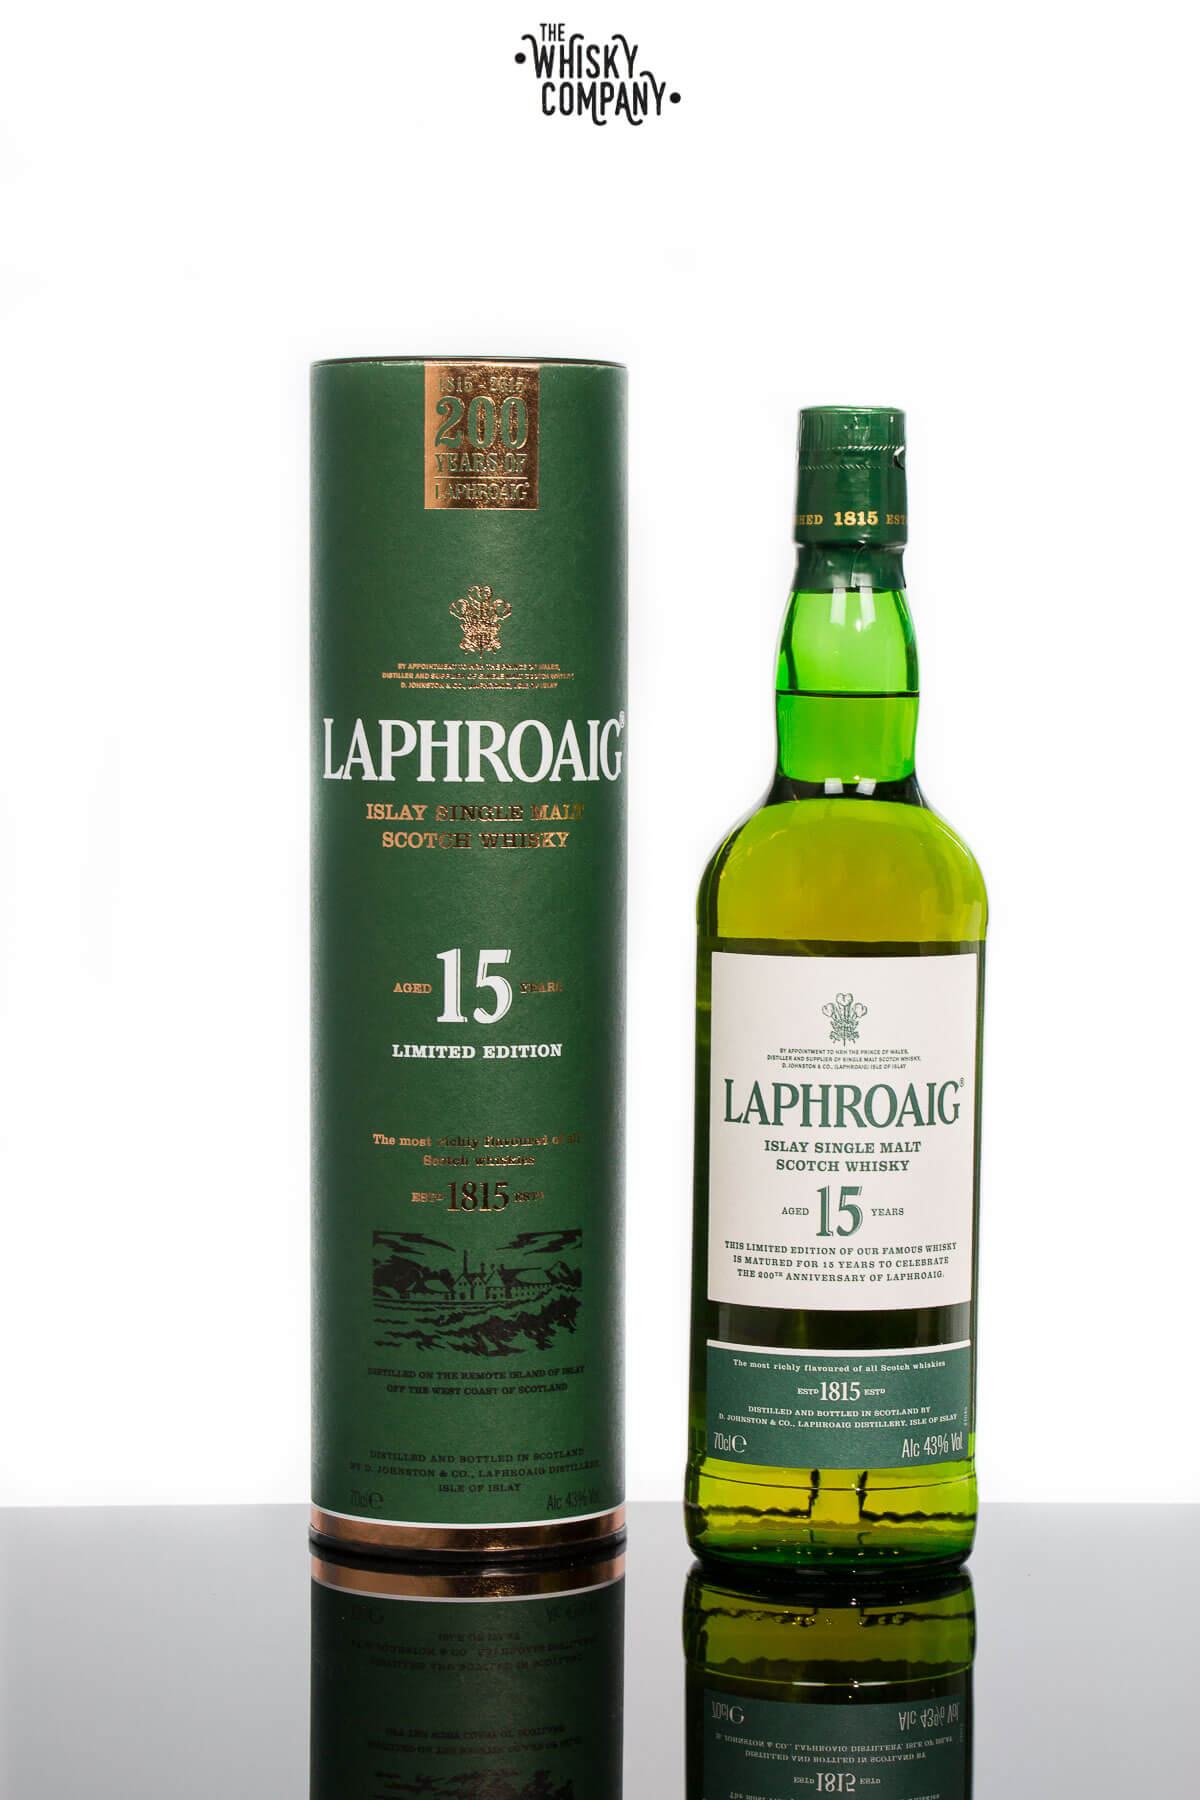 Laphroaig Aged 15 Years Limited Release Islay Single Malt Scotch Whisky